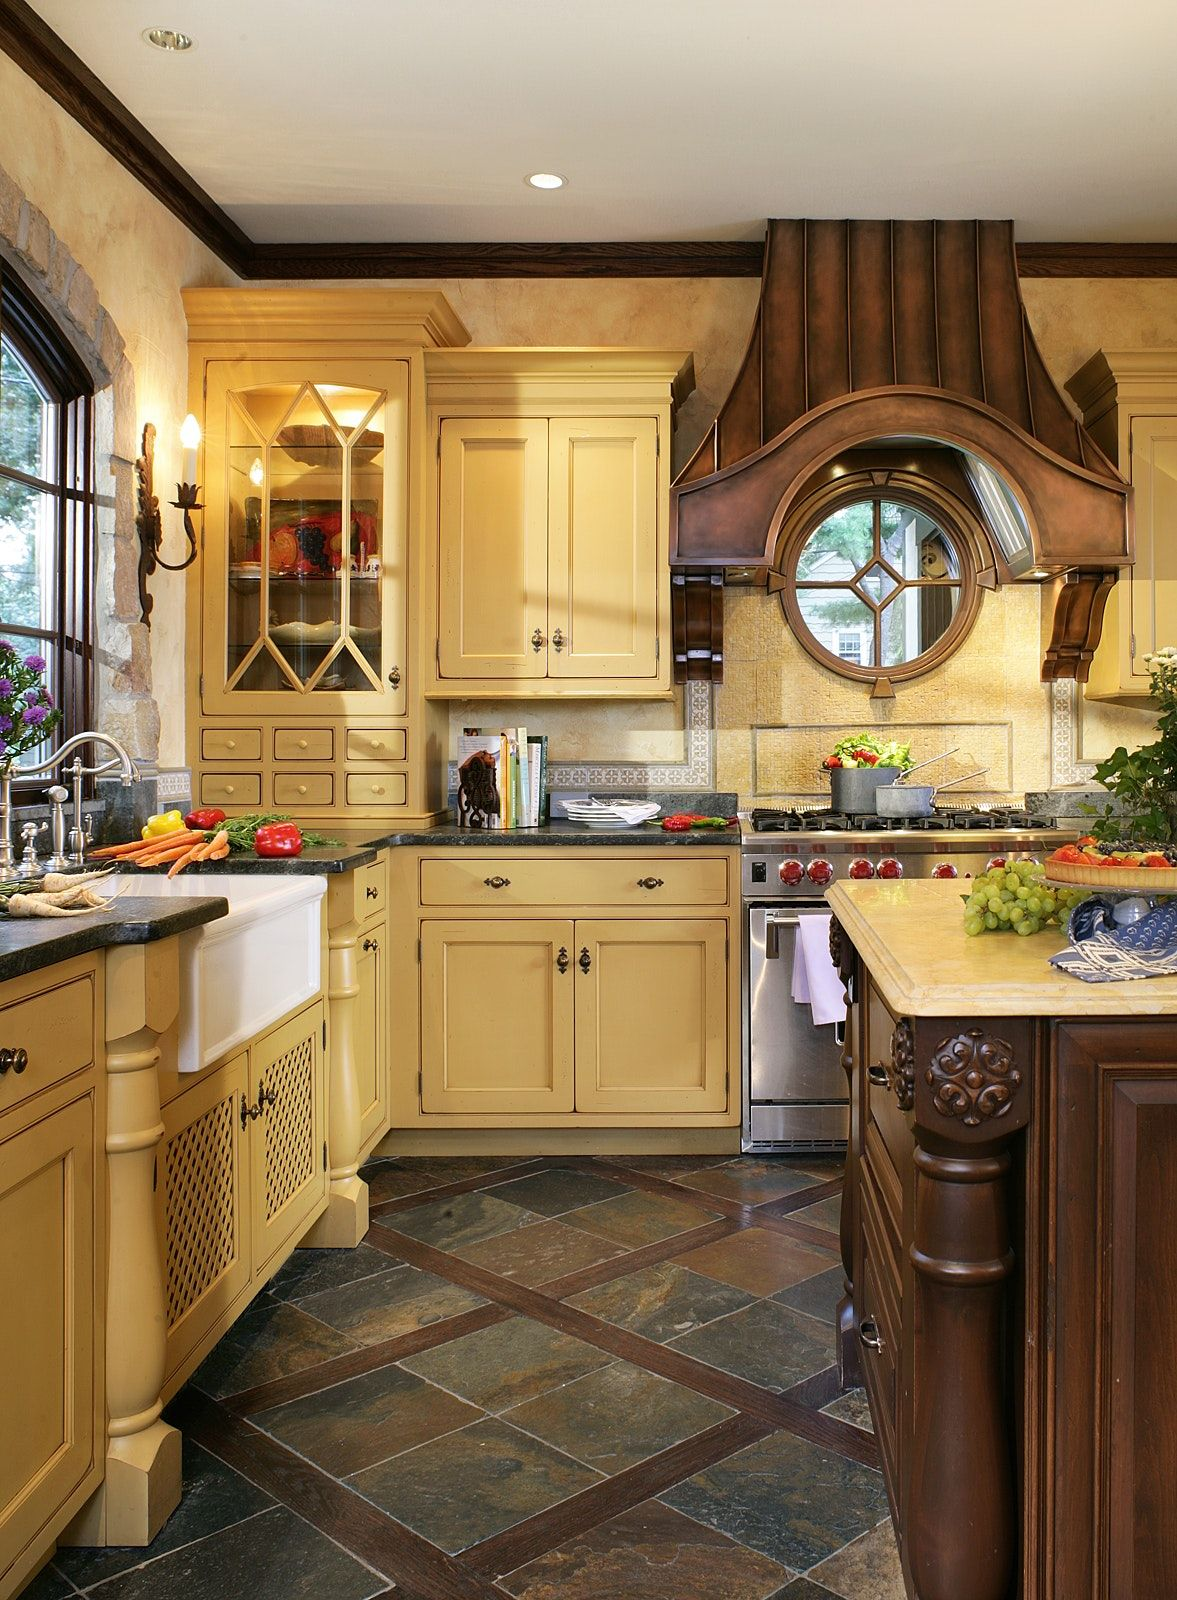 French Country Kitchen Lighting Trash Can For Timeless With Old World Ambiance